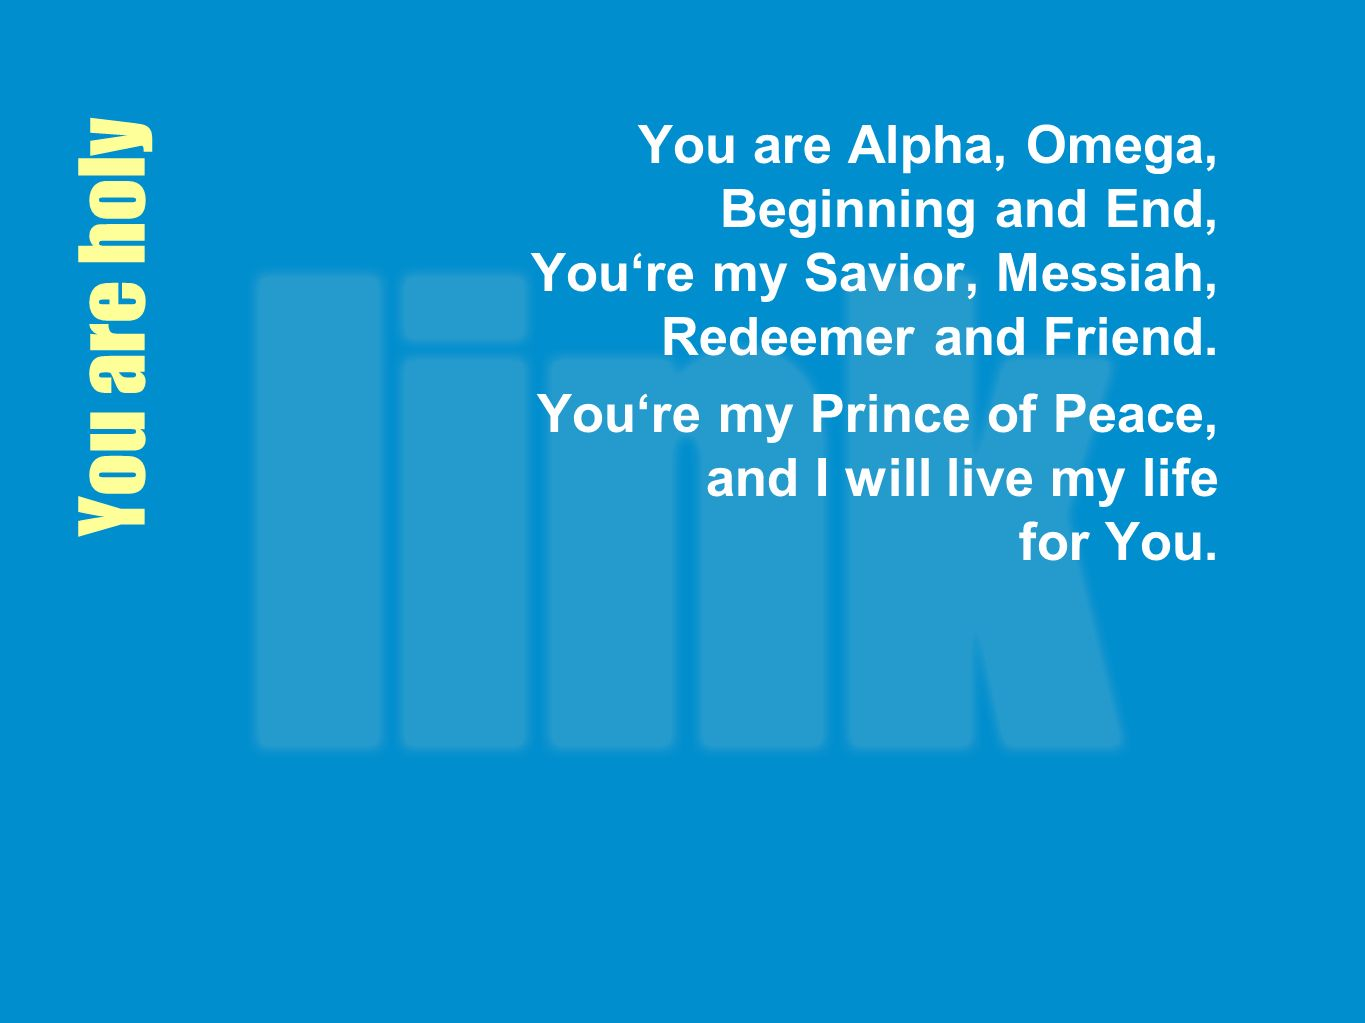 You are Alpha, Omega, Beginning and End, You're my Savior, Messiah, Redeemer and Friend.